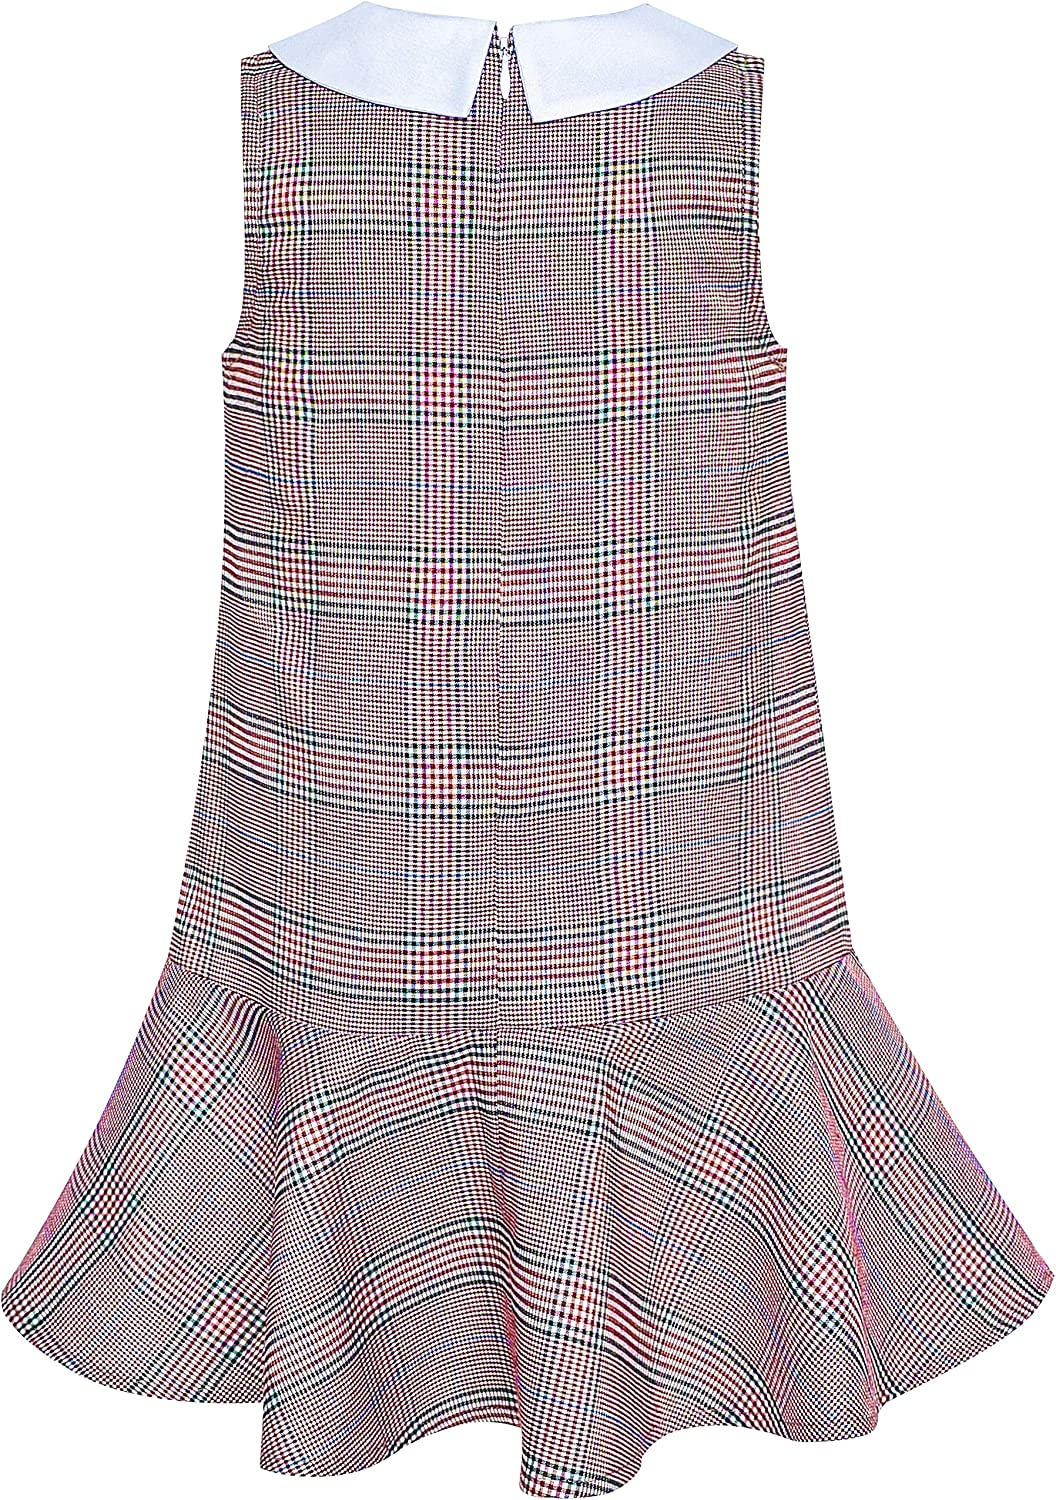 Sunny Fashion Girls Dress Khaki School Pleated Skirt Dress Age 4-12 Years